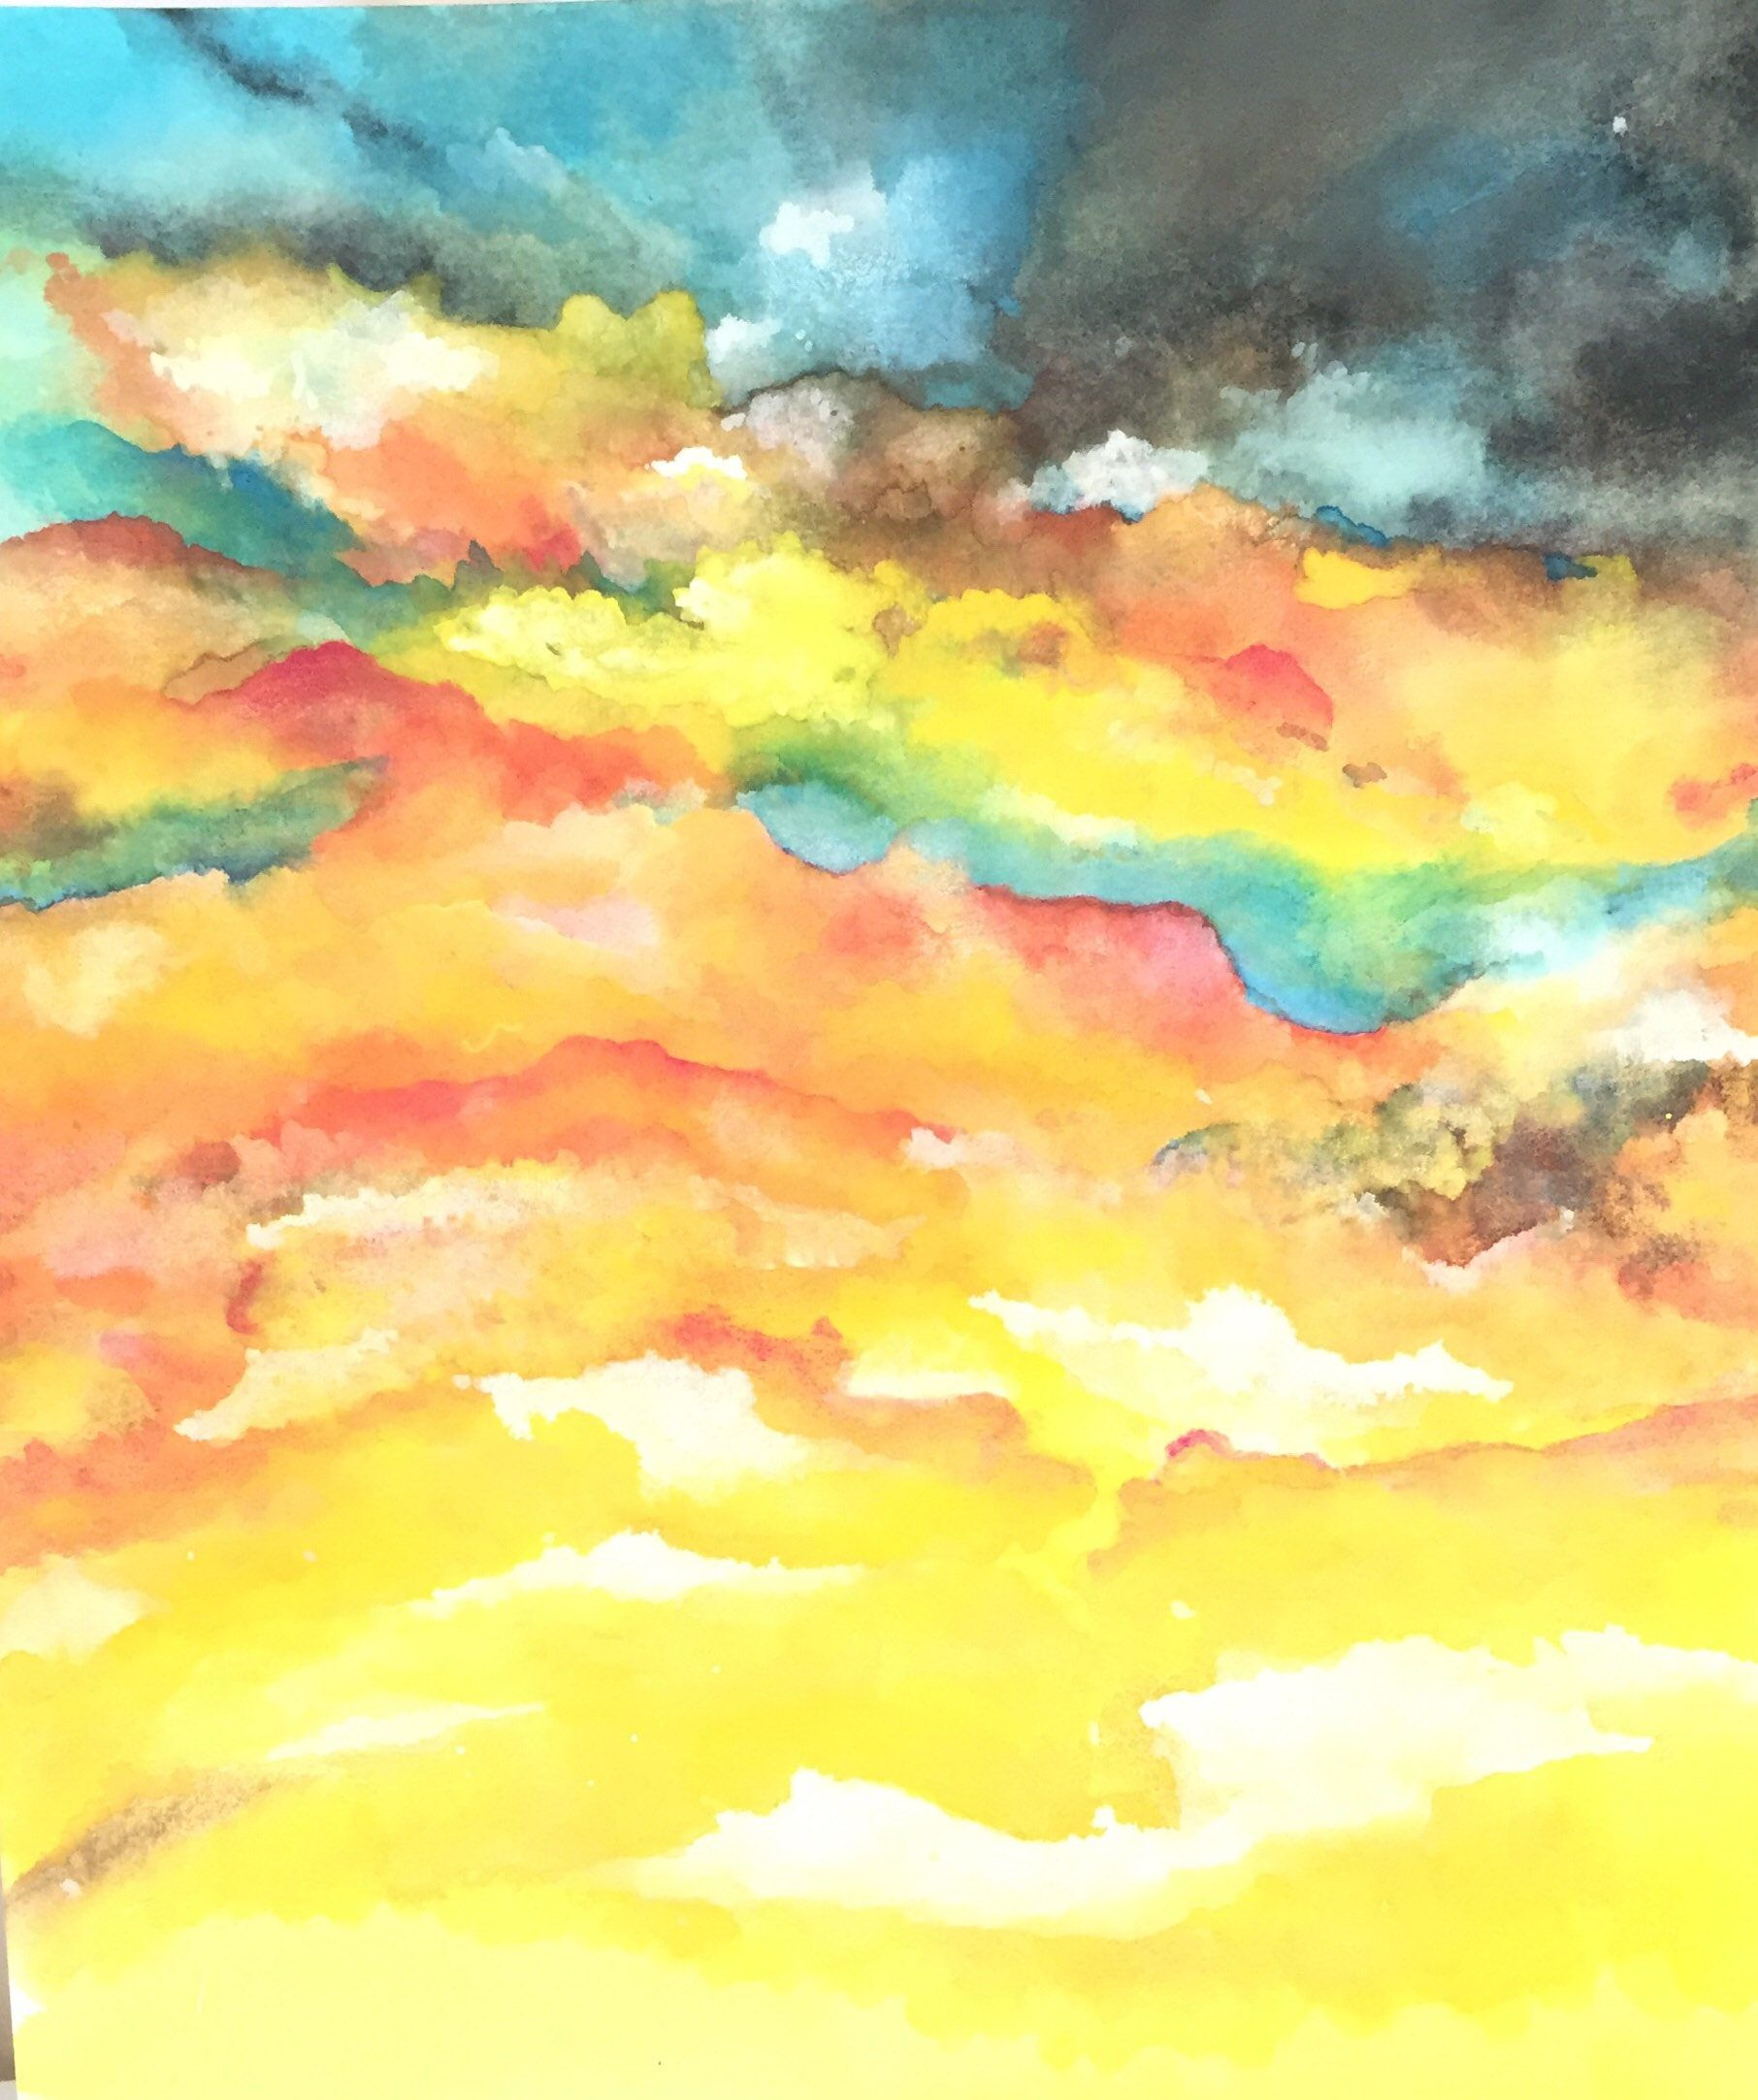 Free Spirit...Original Affordable Watercolor Abstract Painting ...